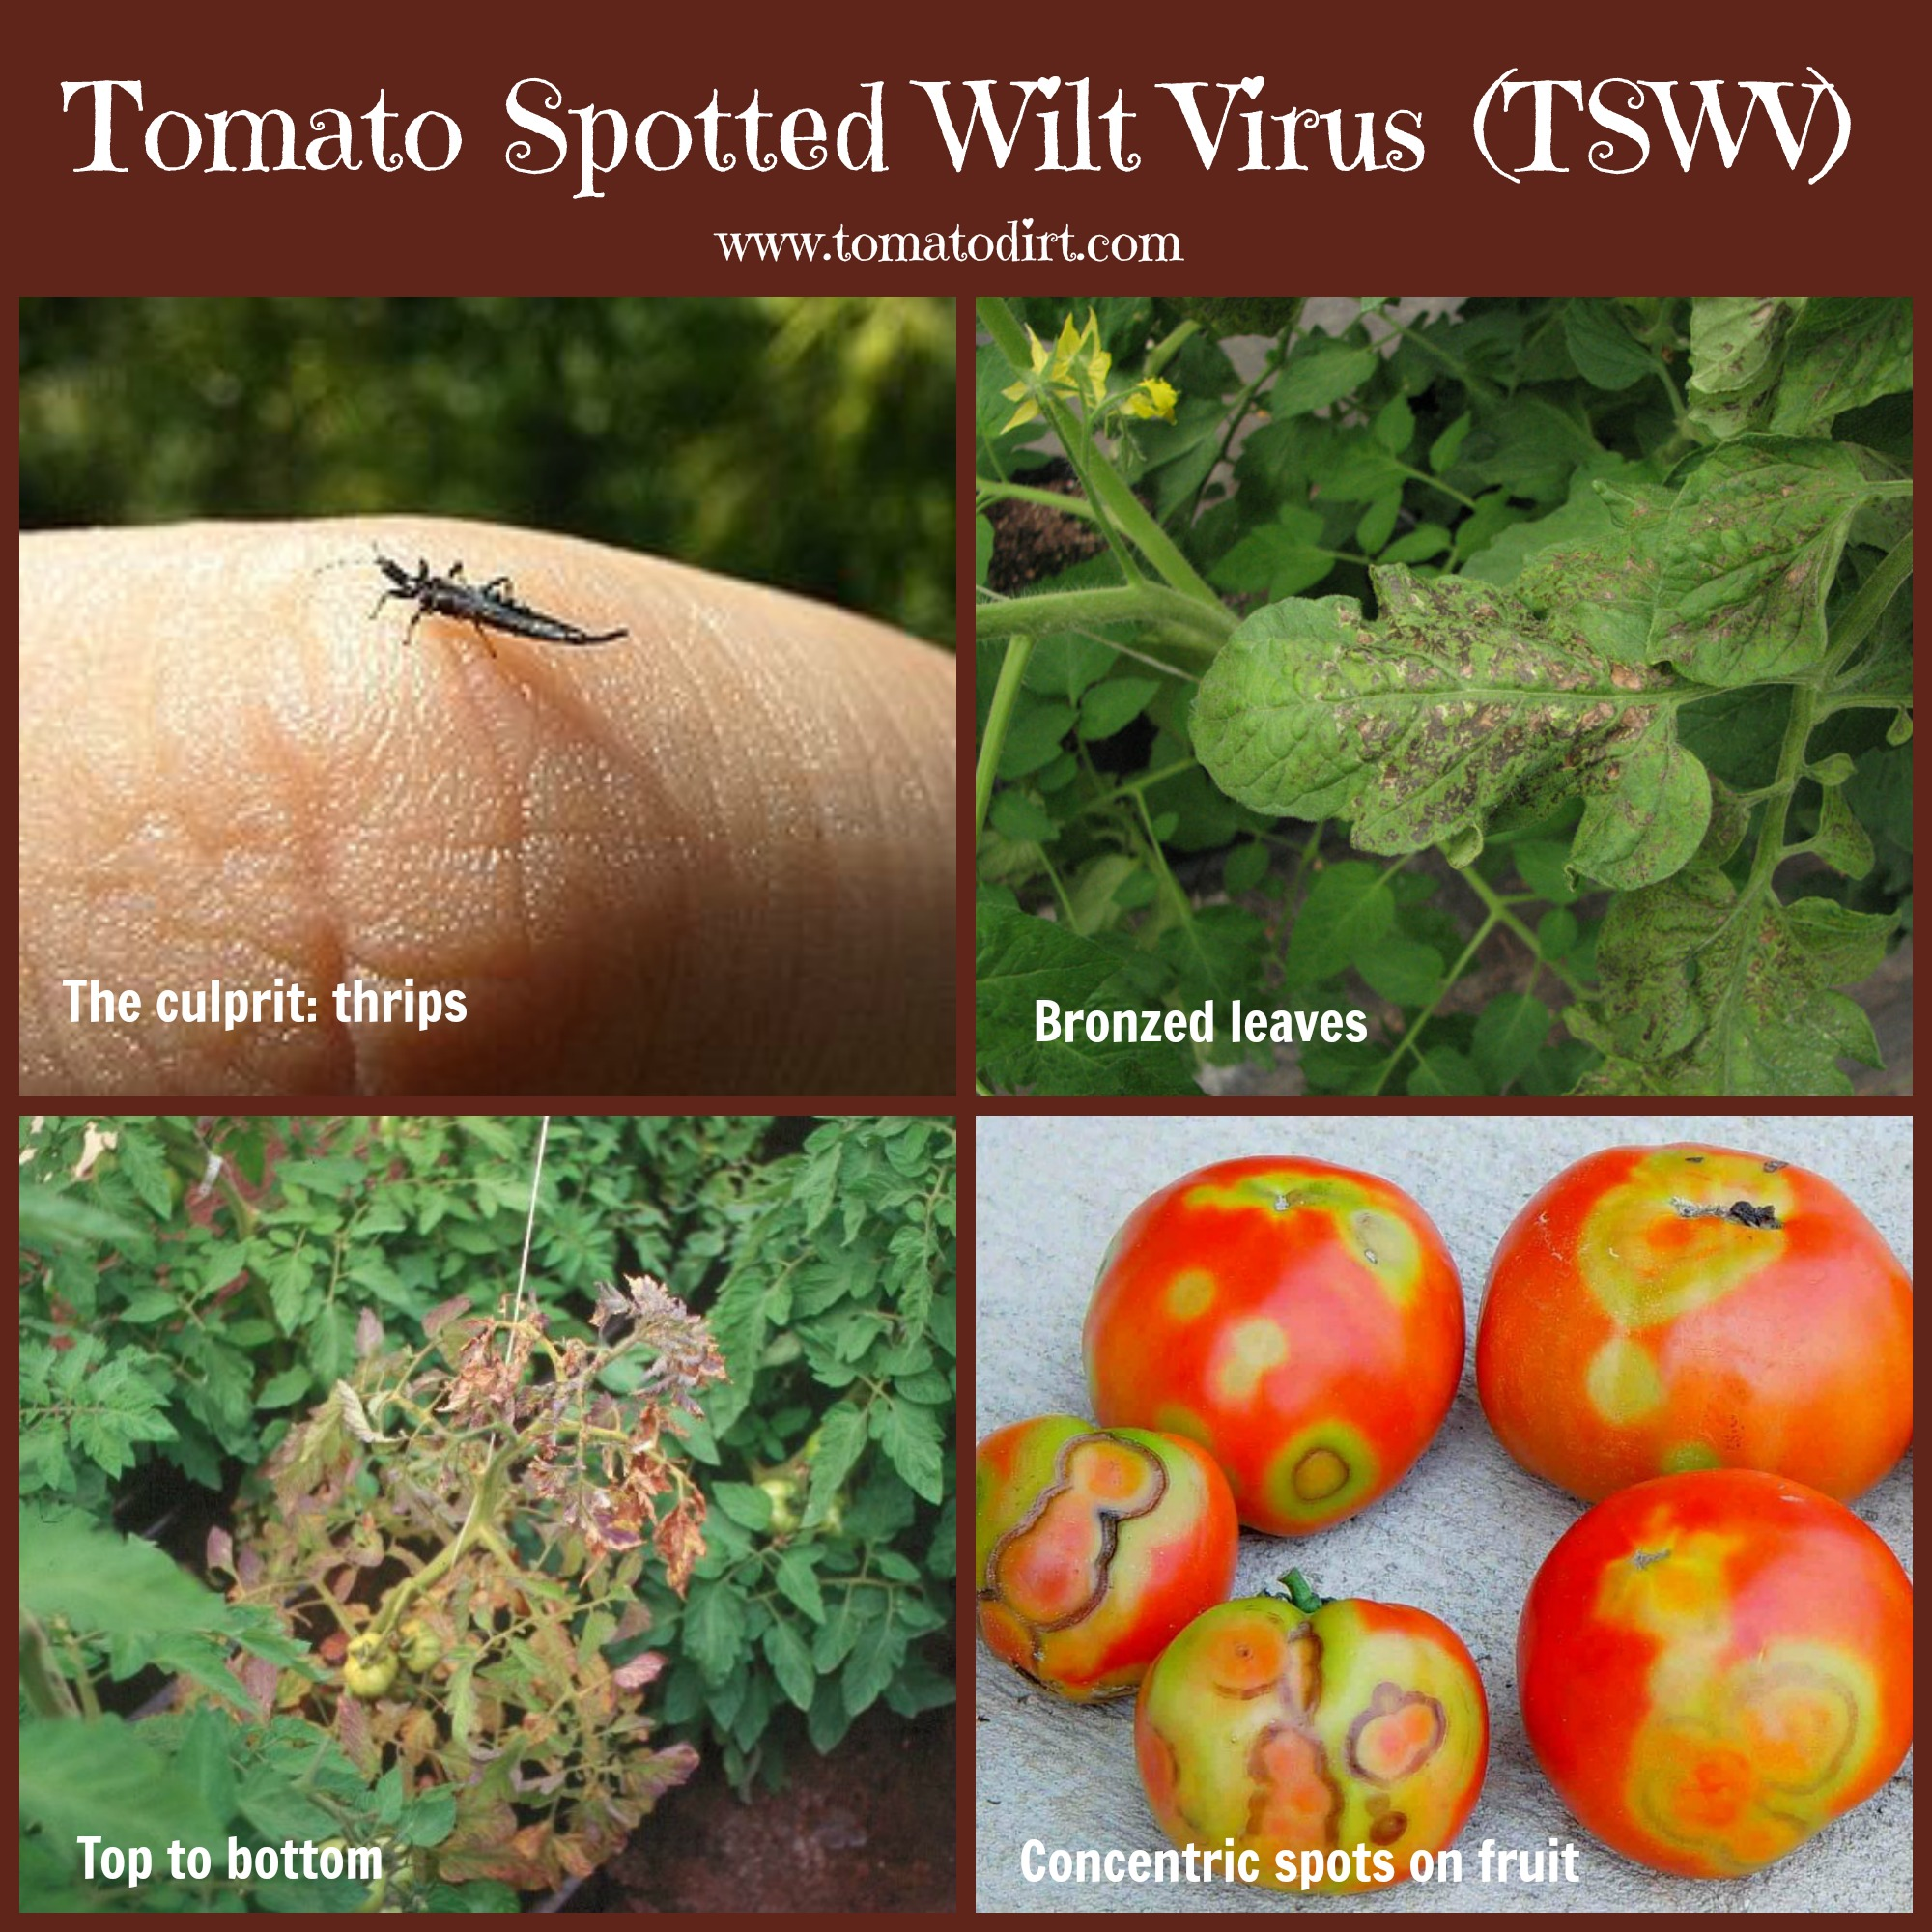 Tomato Spotted Wilt Virus (TSWV): how to identify, control, and prevent it with Tomato Dirt